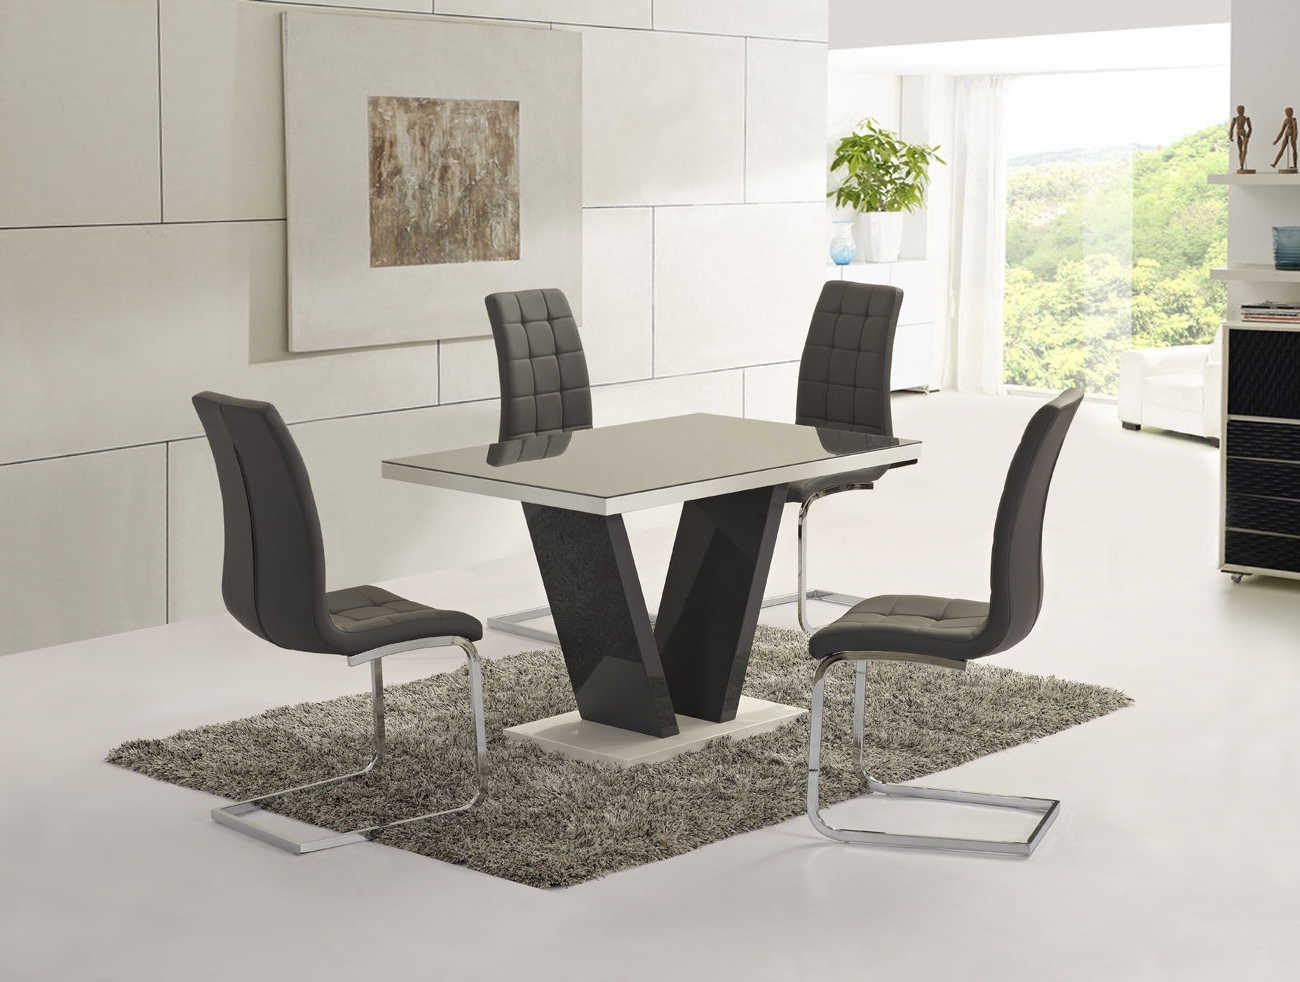 Best And Newest Ga Vico Gloss Grey Glass Top Designer 160Cm Dining Set – 4 6 Grey Throughout White Gloss Dining Tables Sets (View 14 of 25)